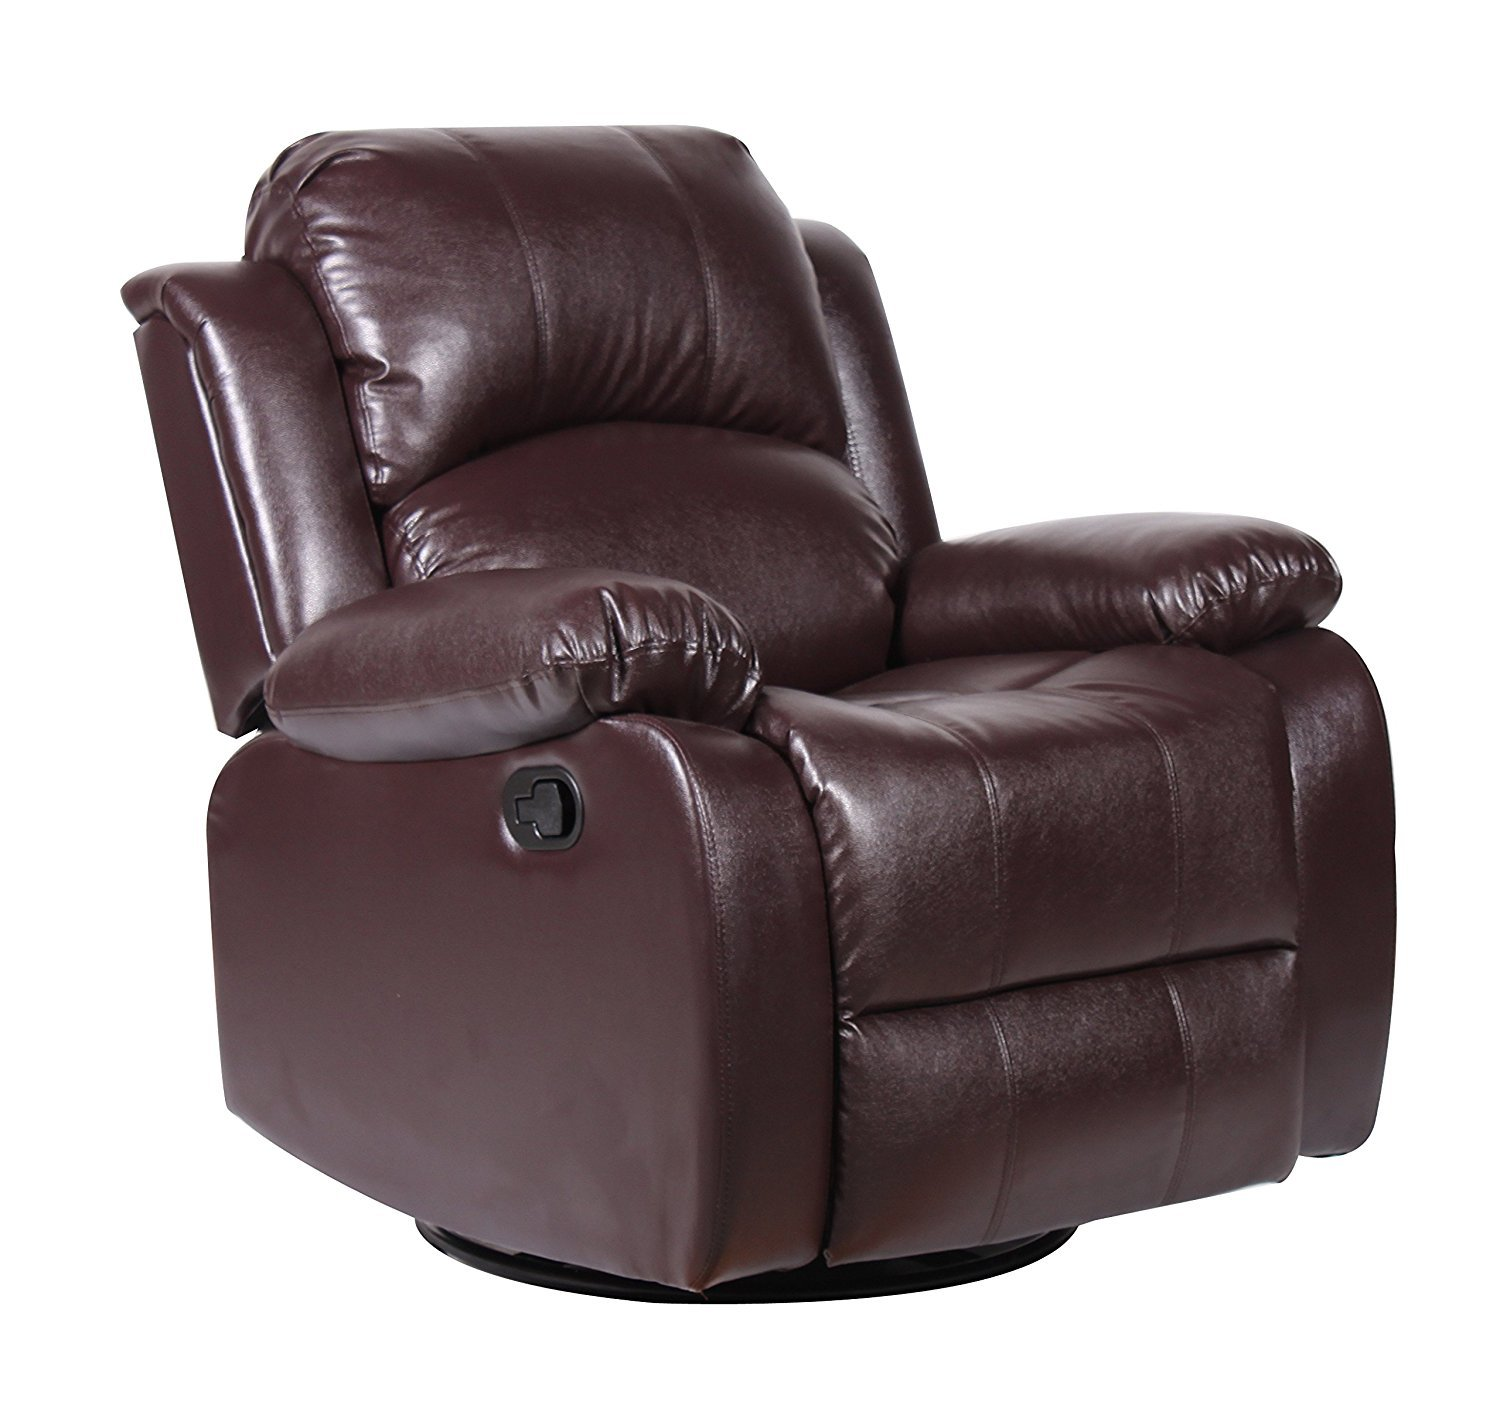 swivel rocker chairs for living room home furniture design With swivel rocker chairs for living room